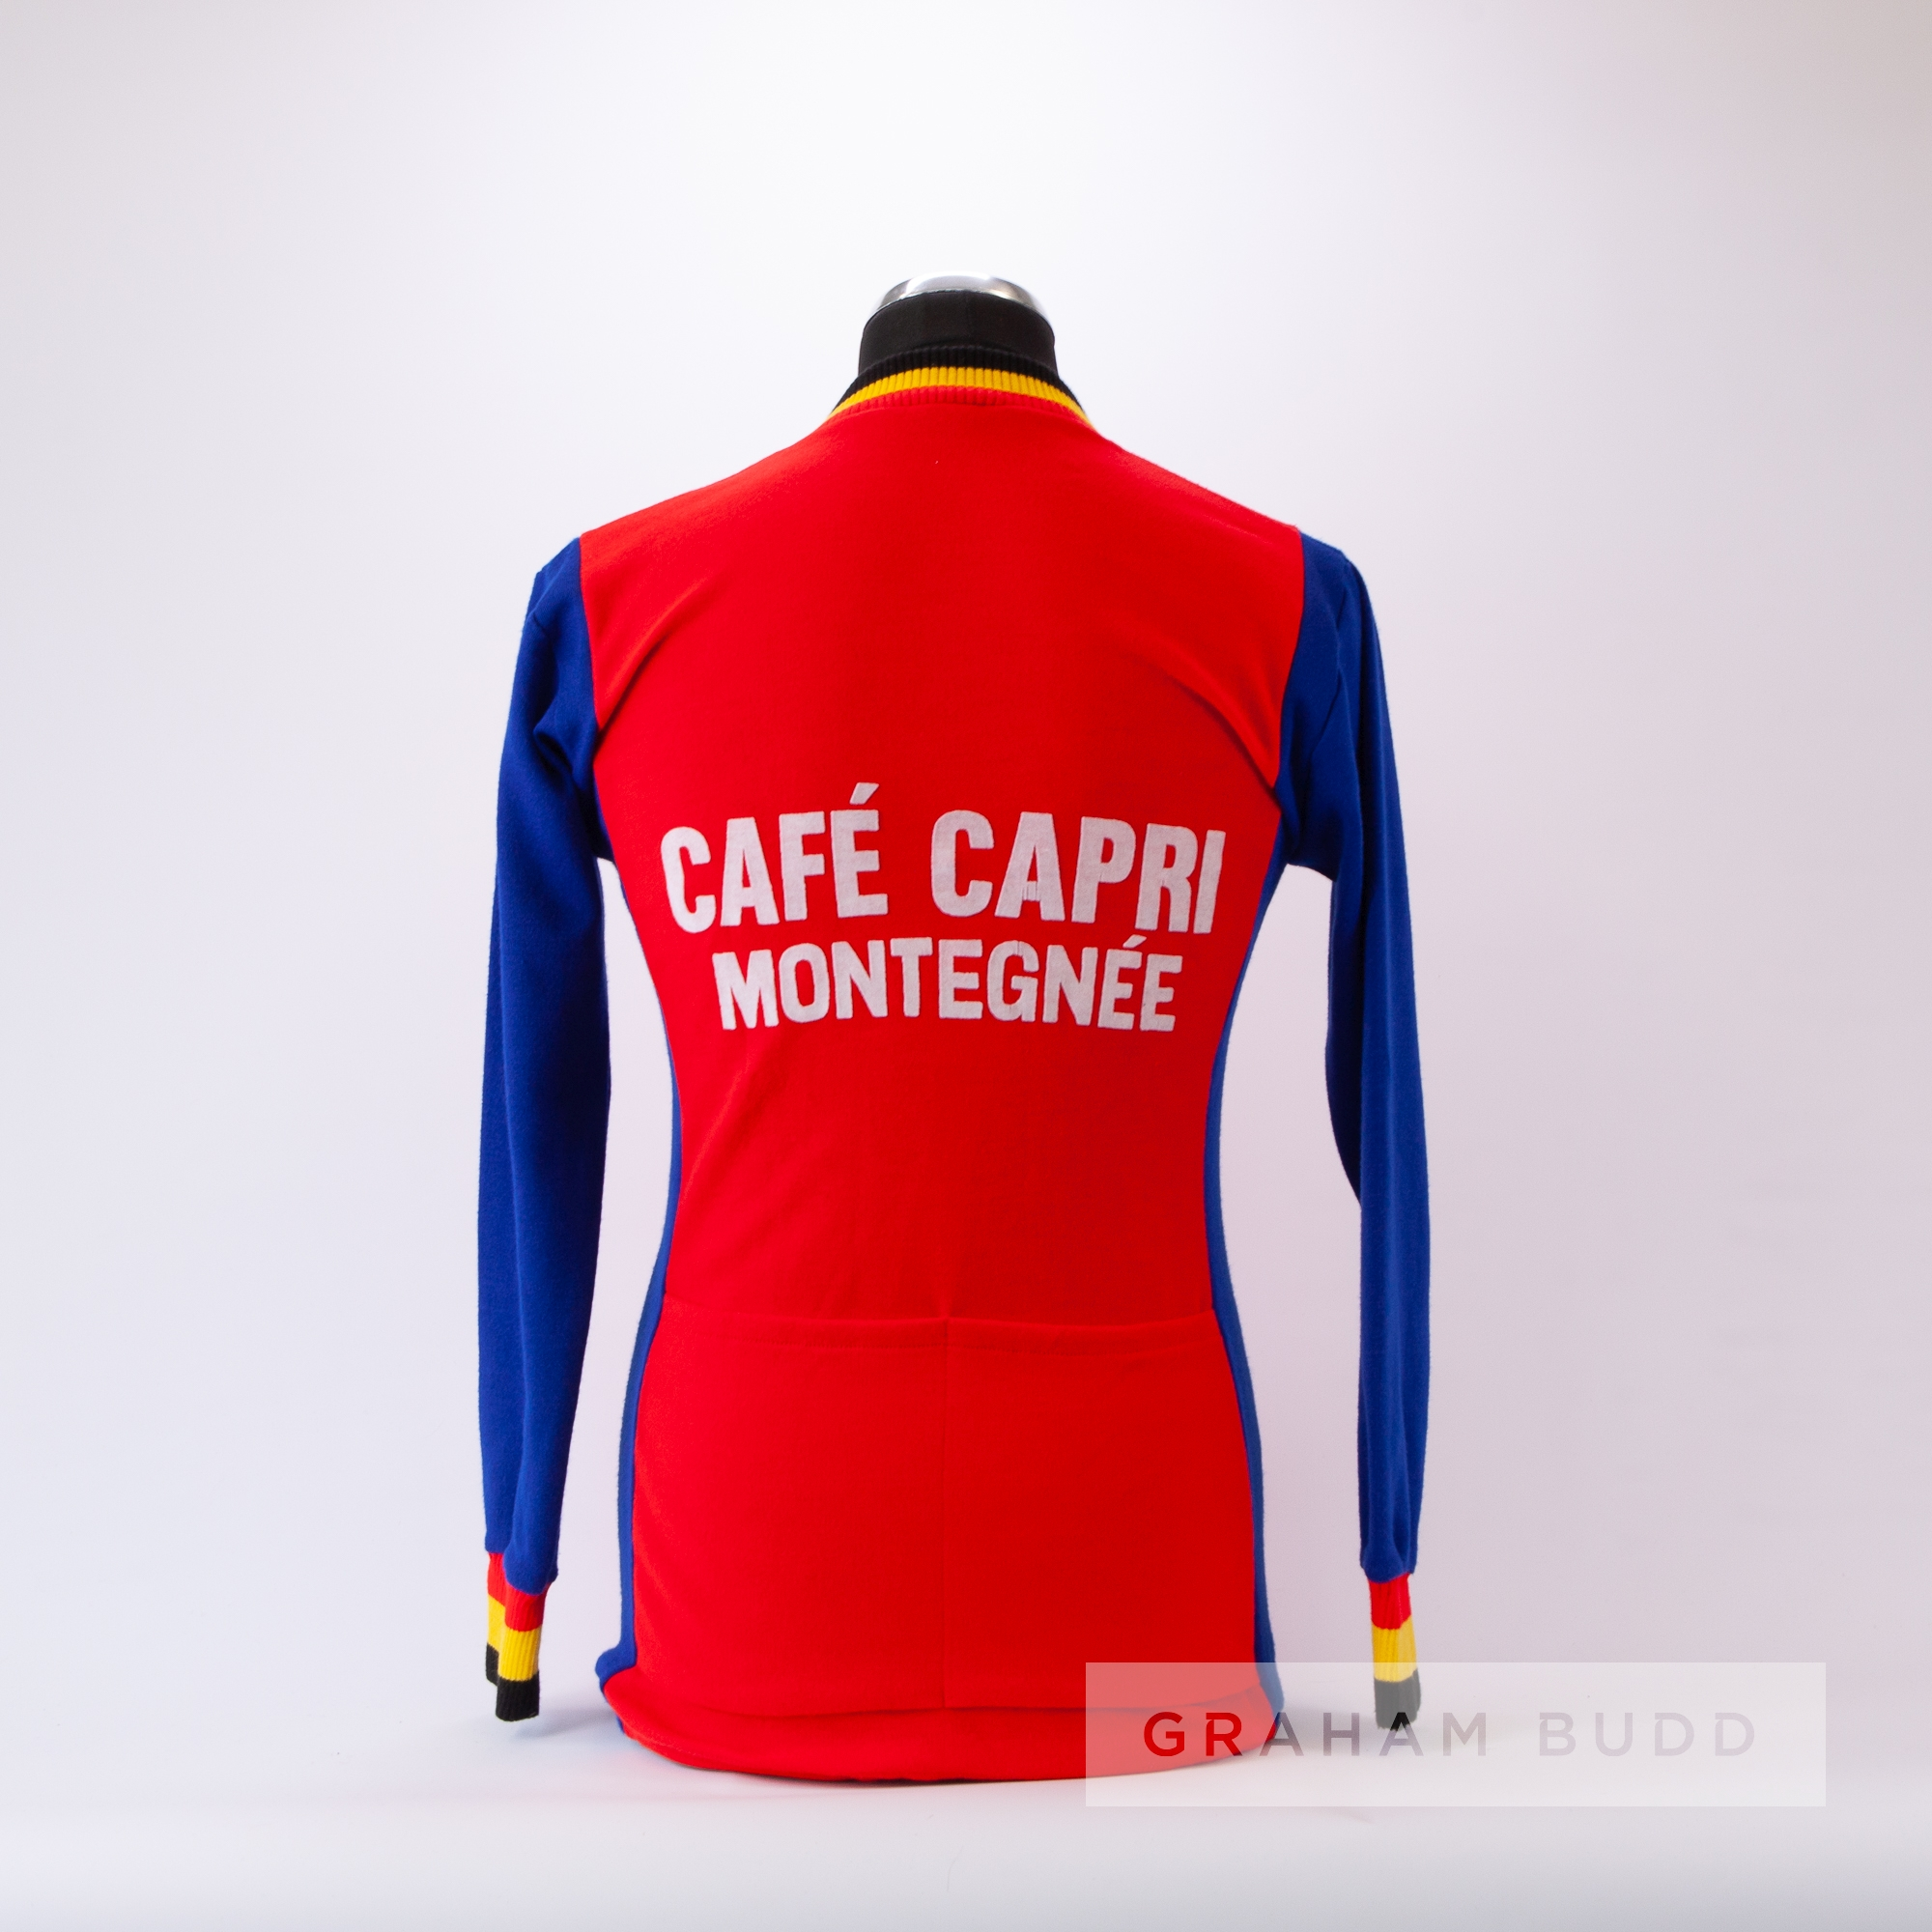 1972 red, blue, yellow and black vintage Pedale Montagnarde Cycling team race jersey, scarce, - Image 4 of 4